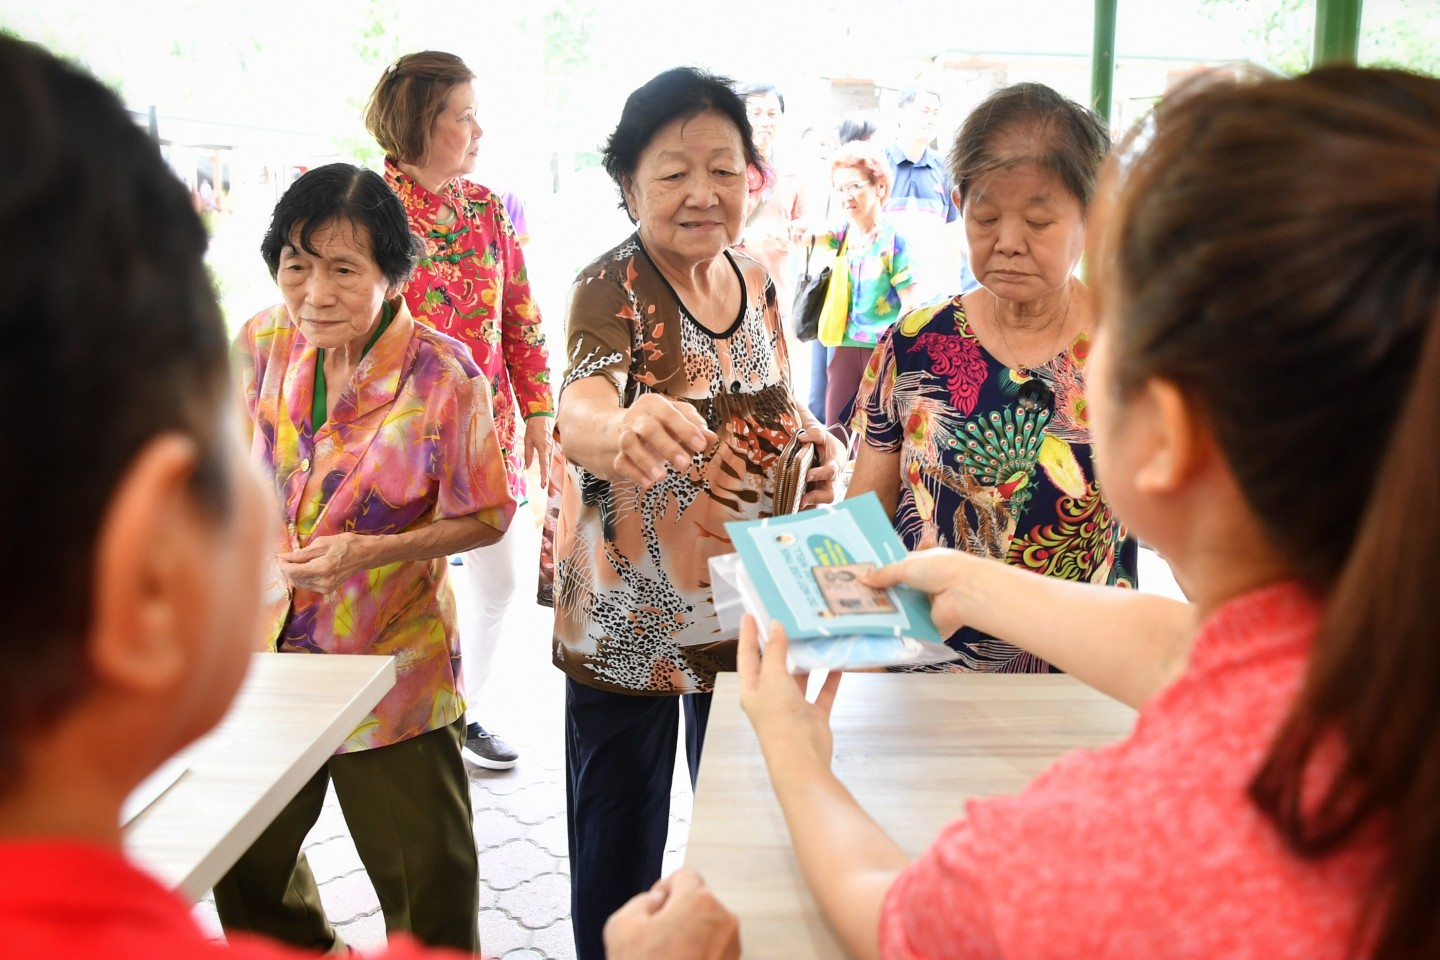 Each household will be receive a pack of 4 masks from the government. Residents are seen collecting their masks at the Kampong Glam Beach Road Residents' Committee centre, on 1 February 2020. (SPH)